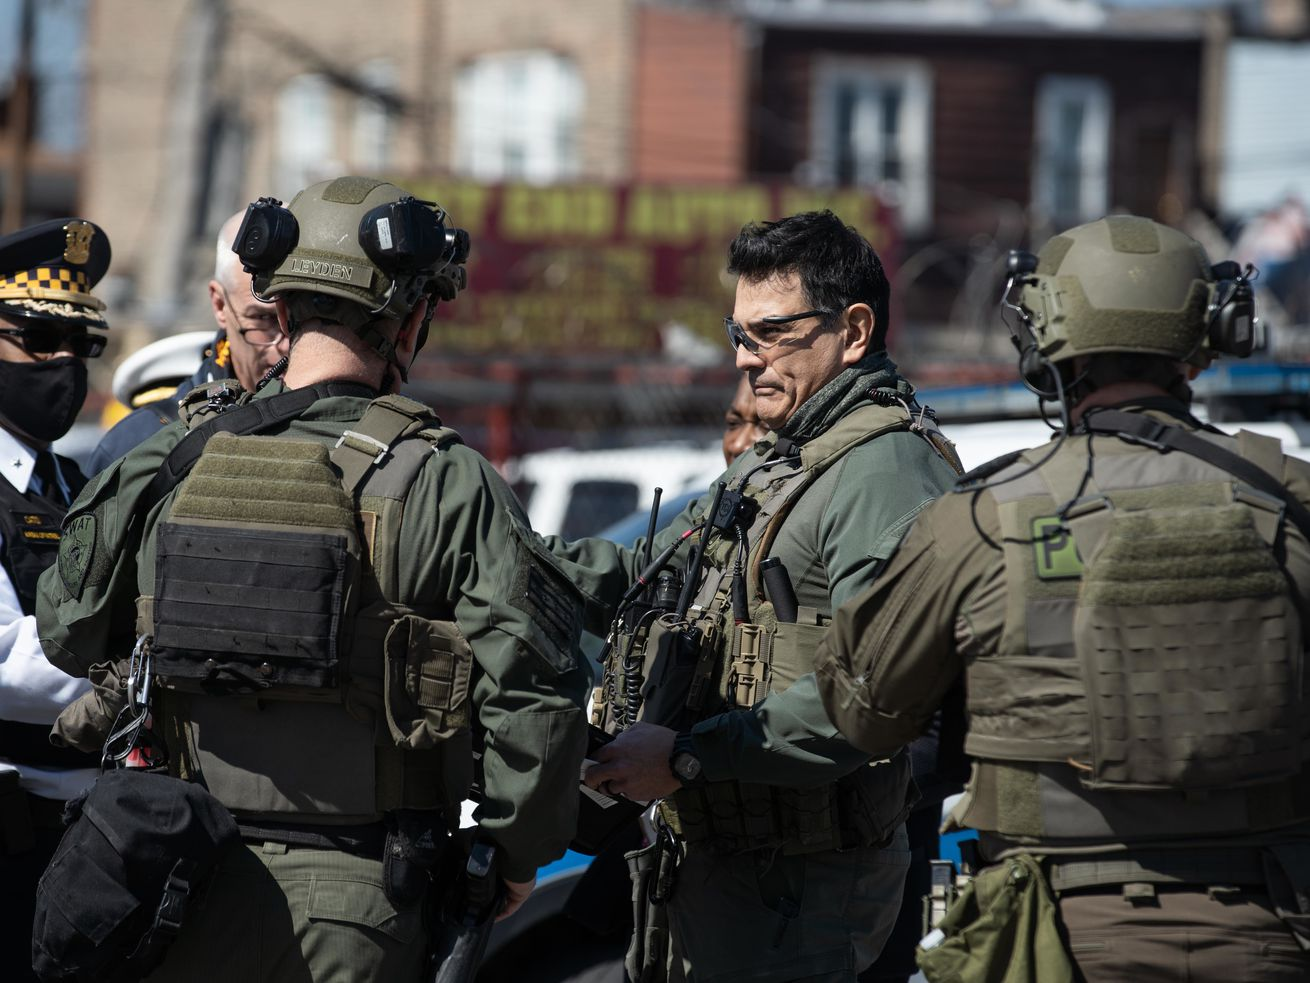 SWAT teams and a police officer talk at an active shooter scene near 207 N. La Crosse Ave. in the South Austin neighborhood on Saturday.